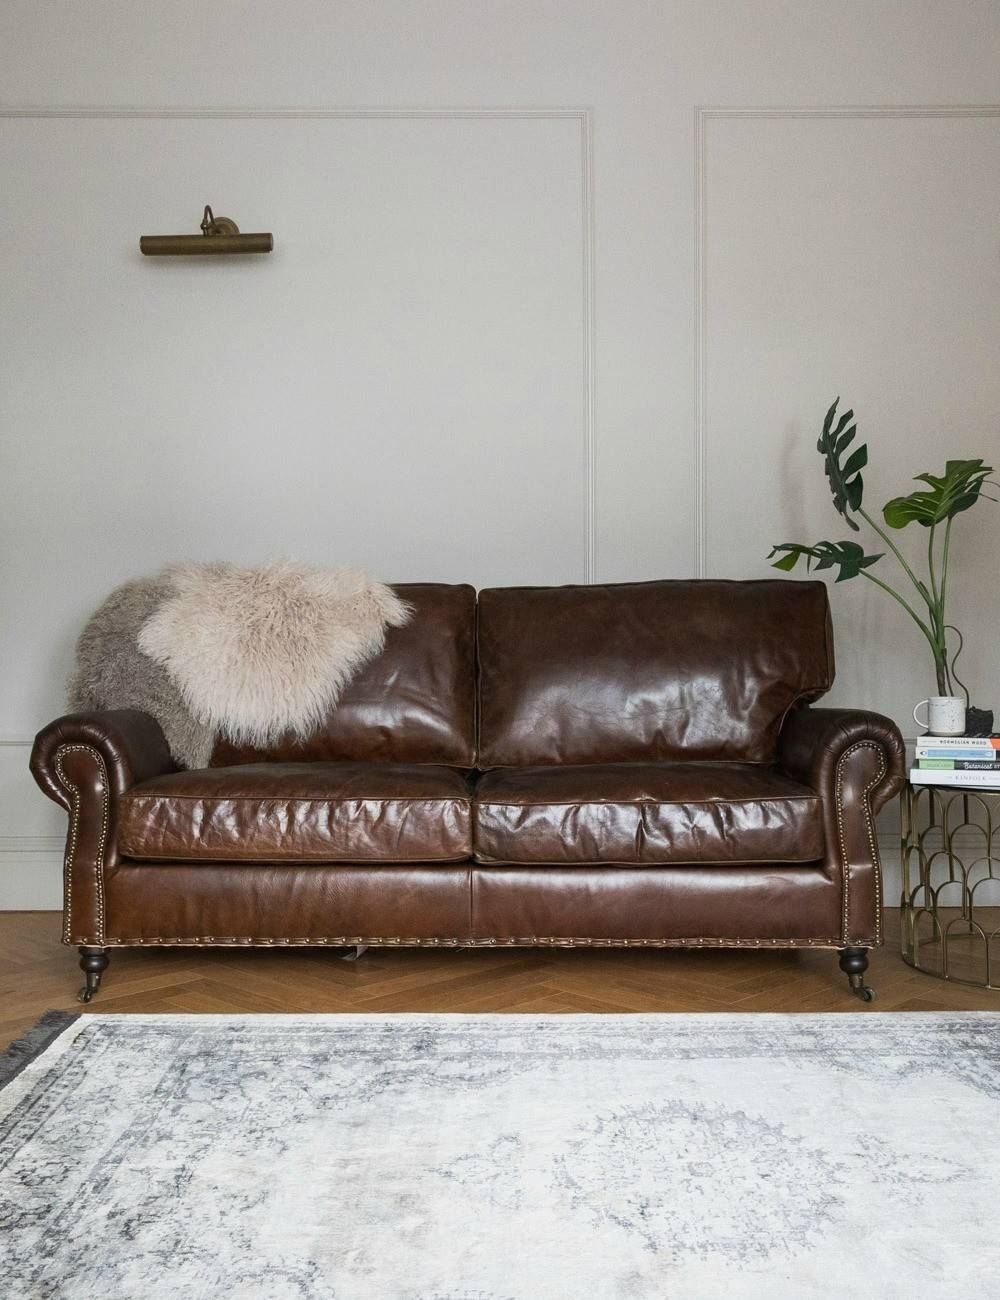 Antique Leather Sofa Bed | Tehranmix Decoration within Vintage Leather Sofa Beds (Image 3 of 30)